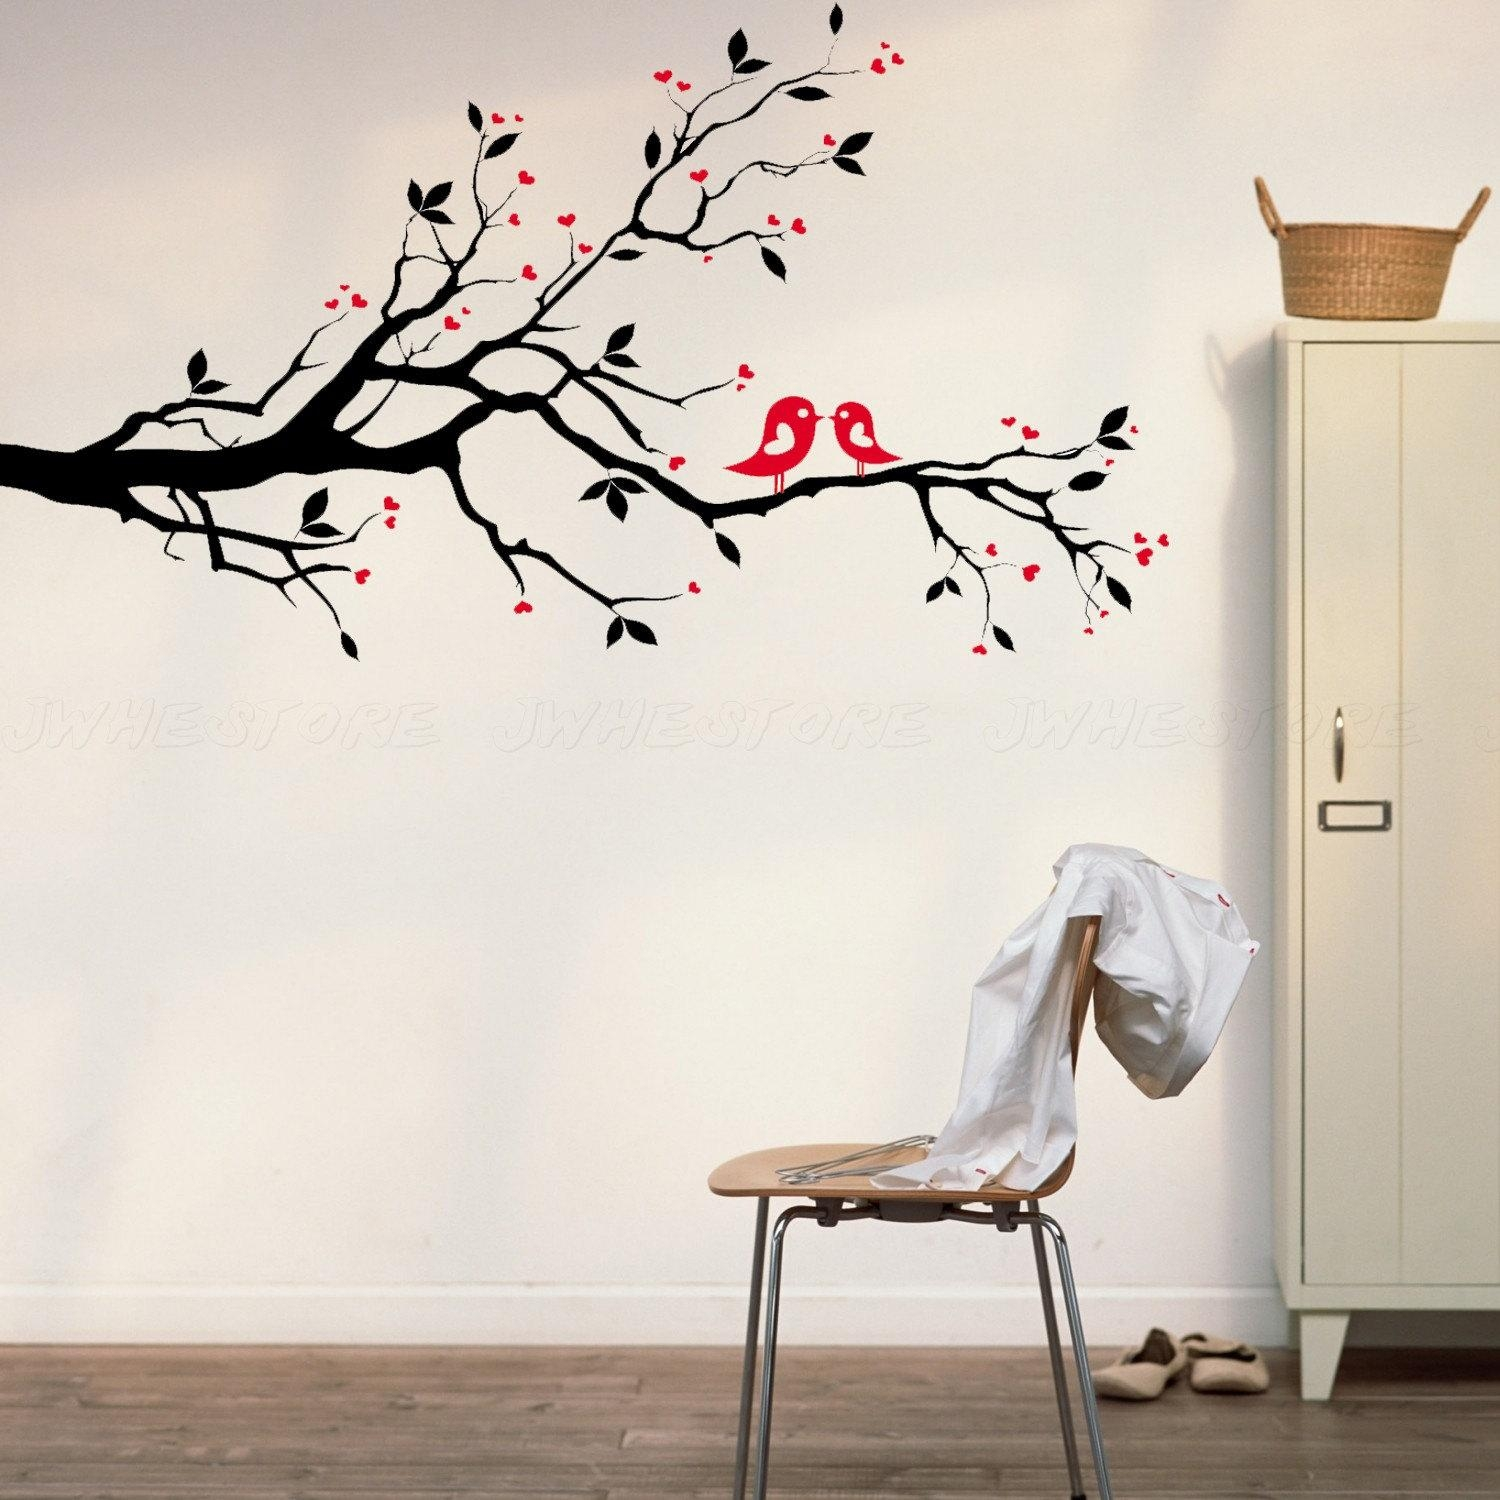 Kids Room: Wall Decal Ideas For Wall Decorations Wall Art Canvas Regarding Red Cherry Blossom Wall Art (View 12 of 20)